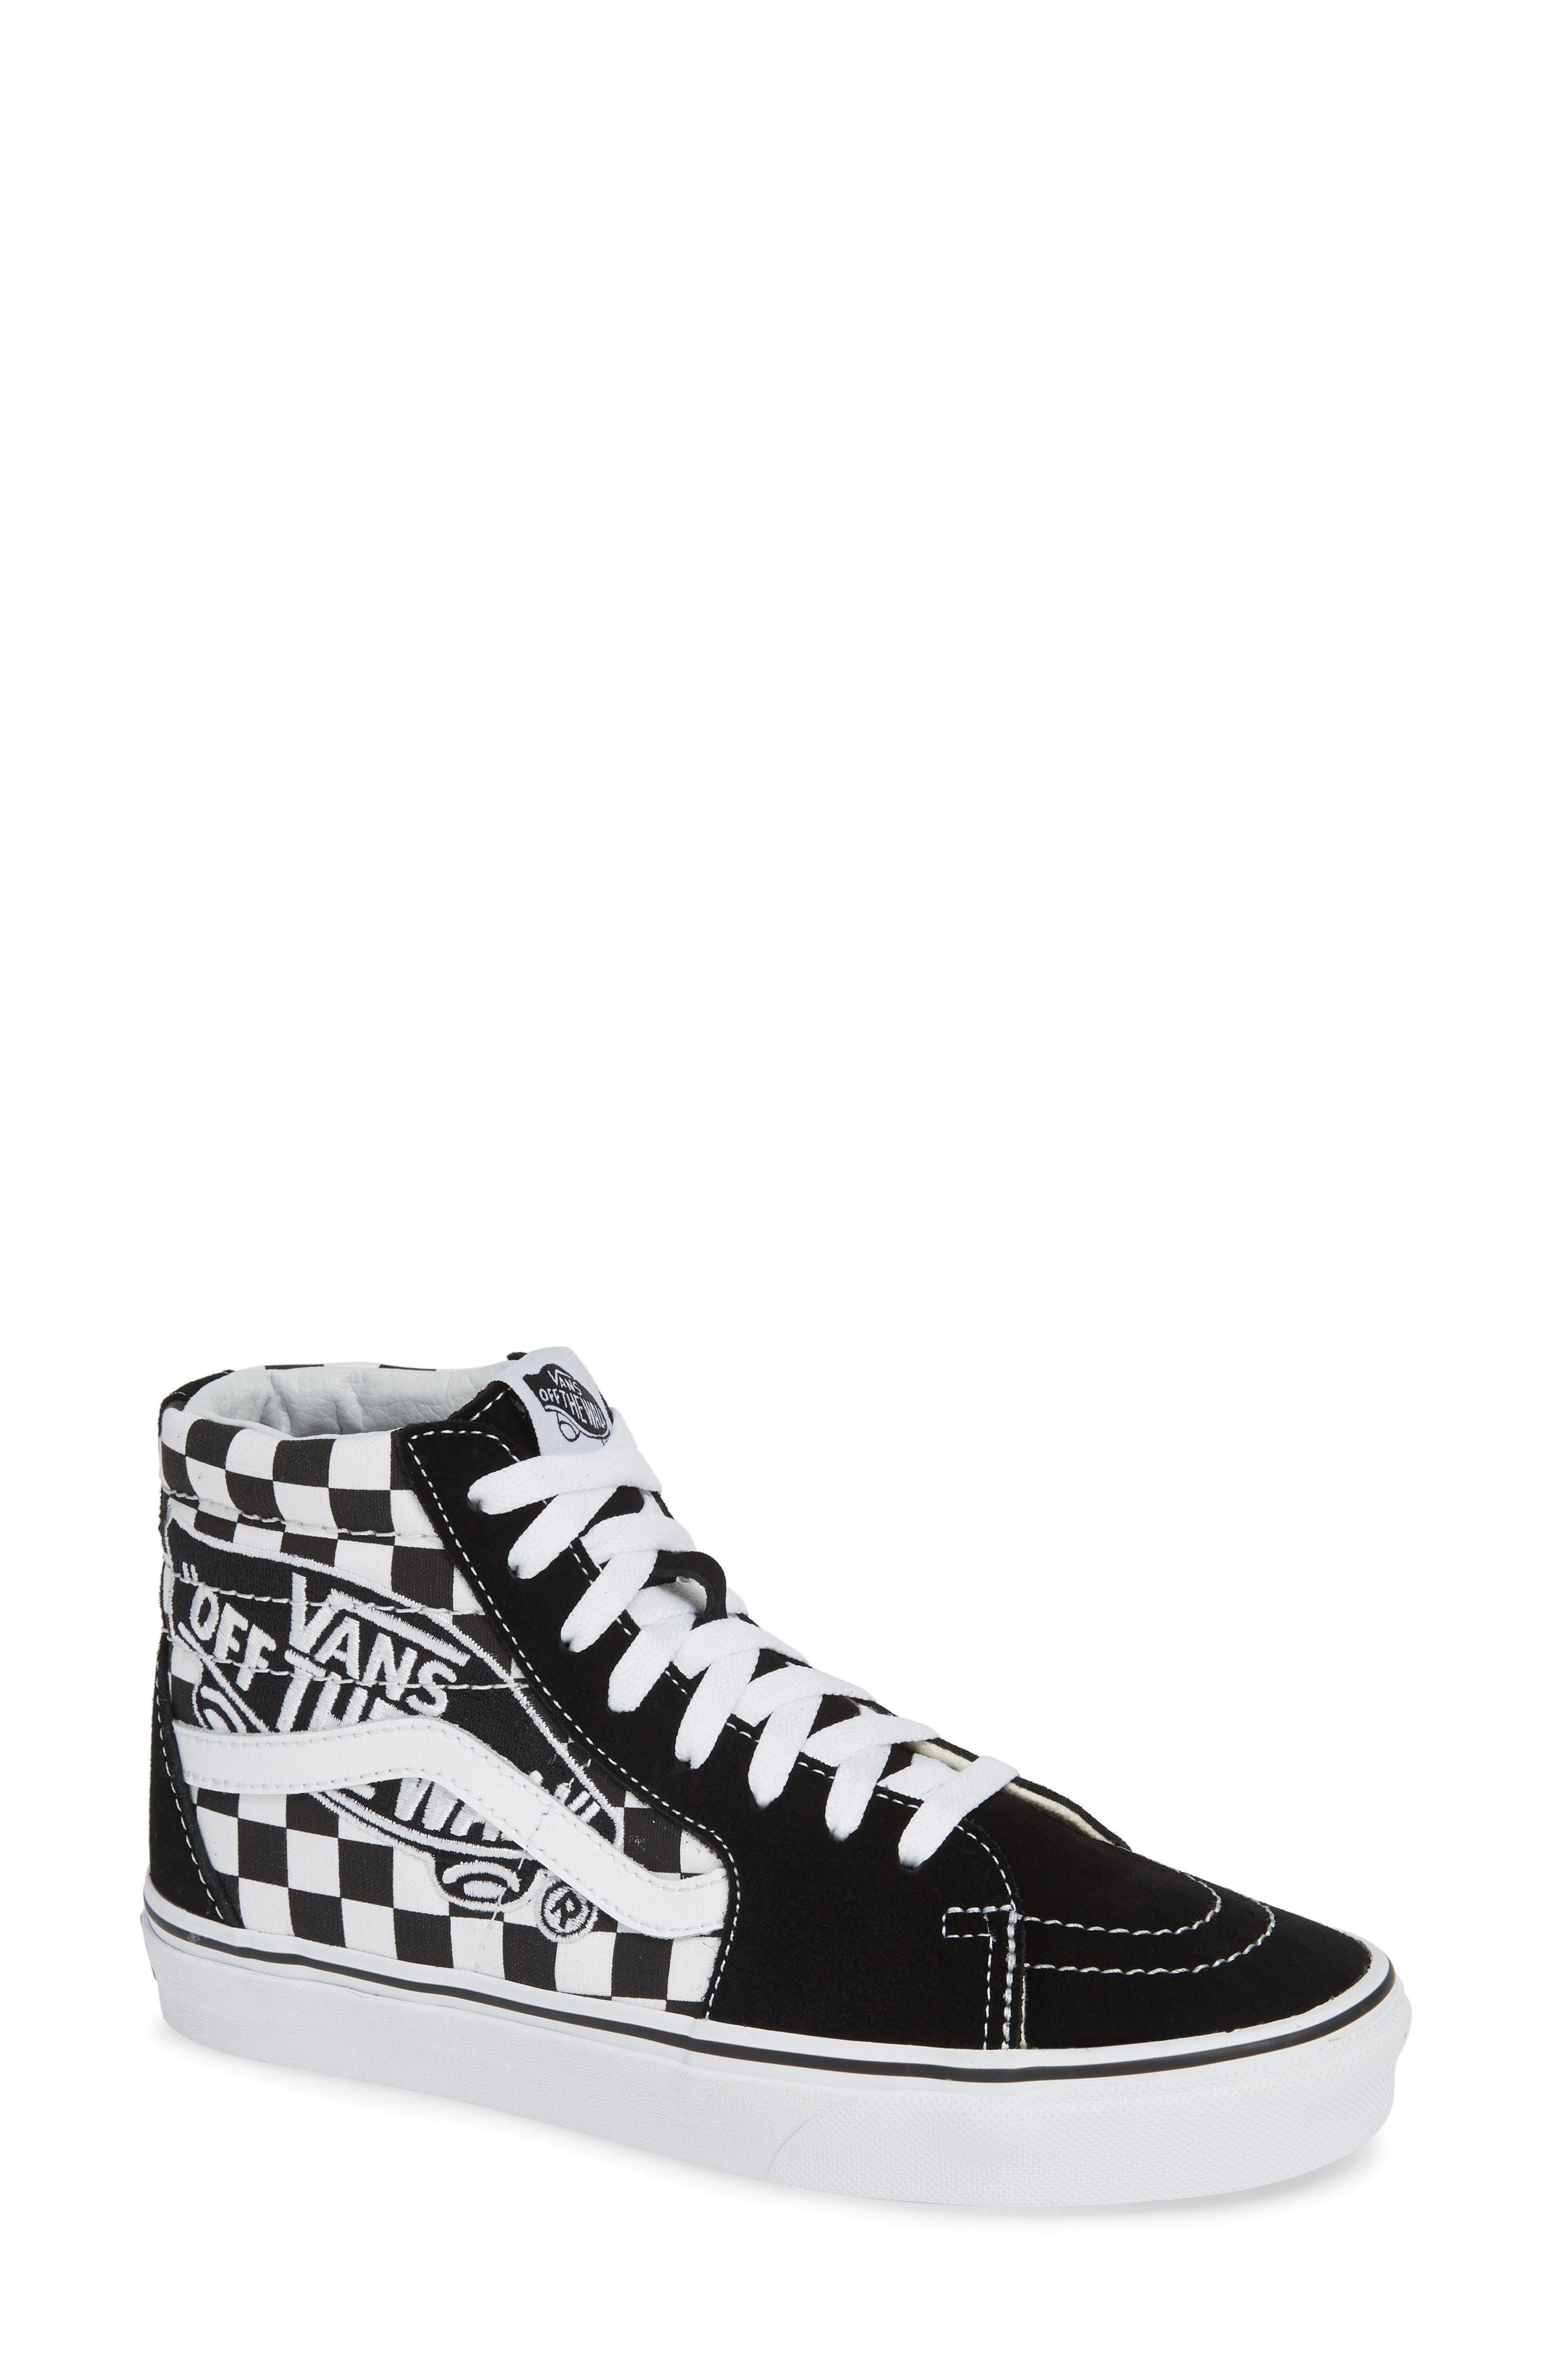 90a4bea37eac75 Lyst - Vans Sk8-hi Shoes (high-top Trainers) in Black